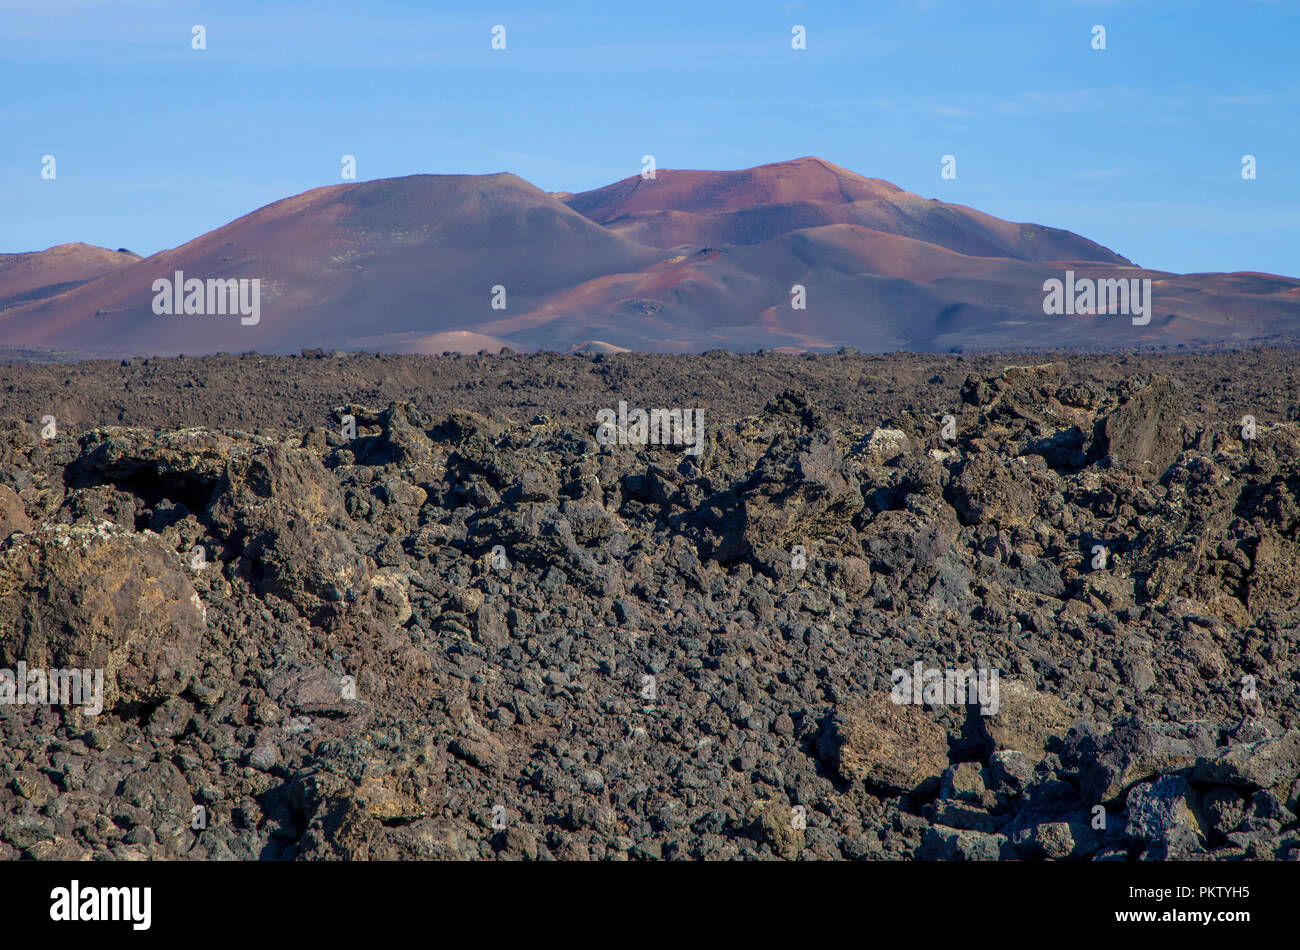 Lava field in front of the Fire Mountains, Montanas del Fuego, Timanfaya National Park at Yaiza, Lanzarote, Canary Islands - Stock Image